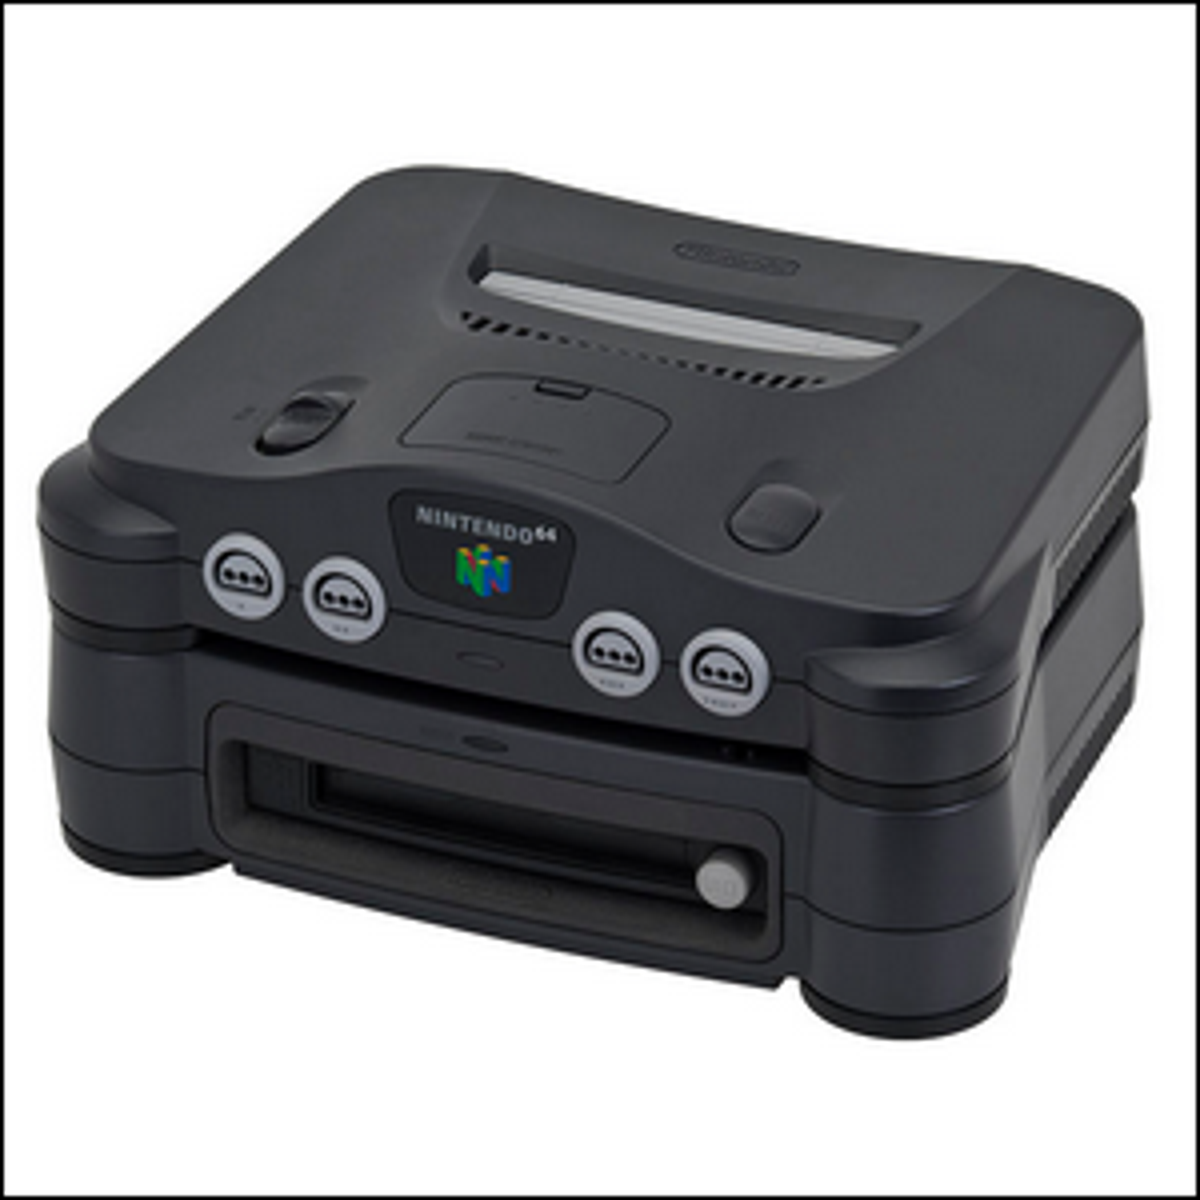 A Nintendo 64DD attached to a Nintendo 64 console.